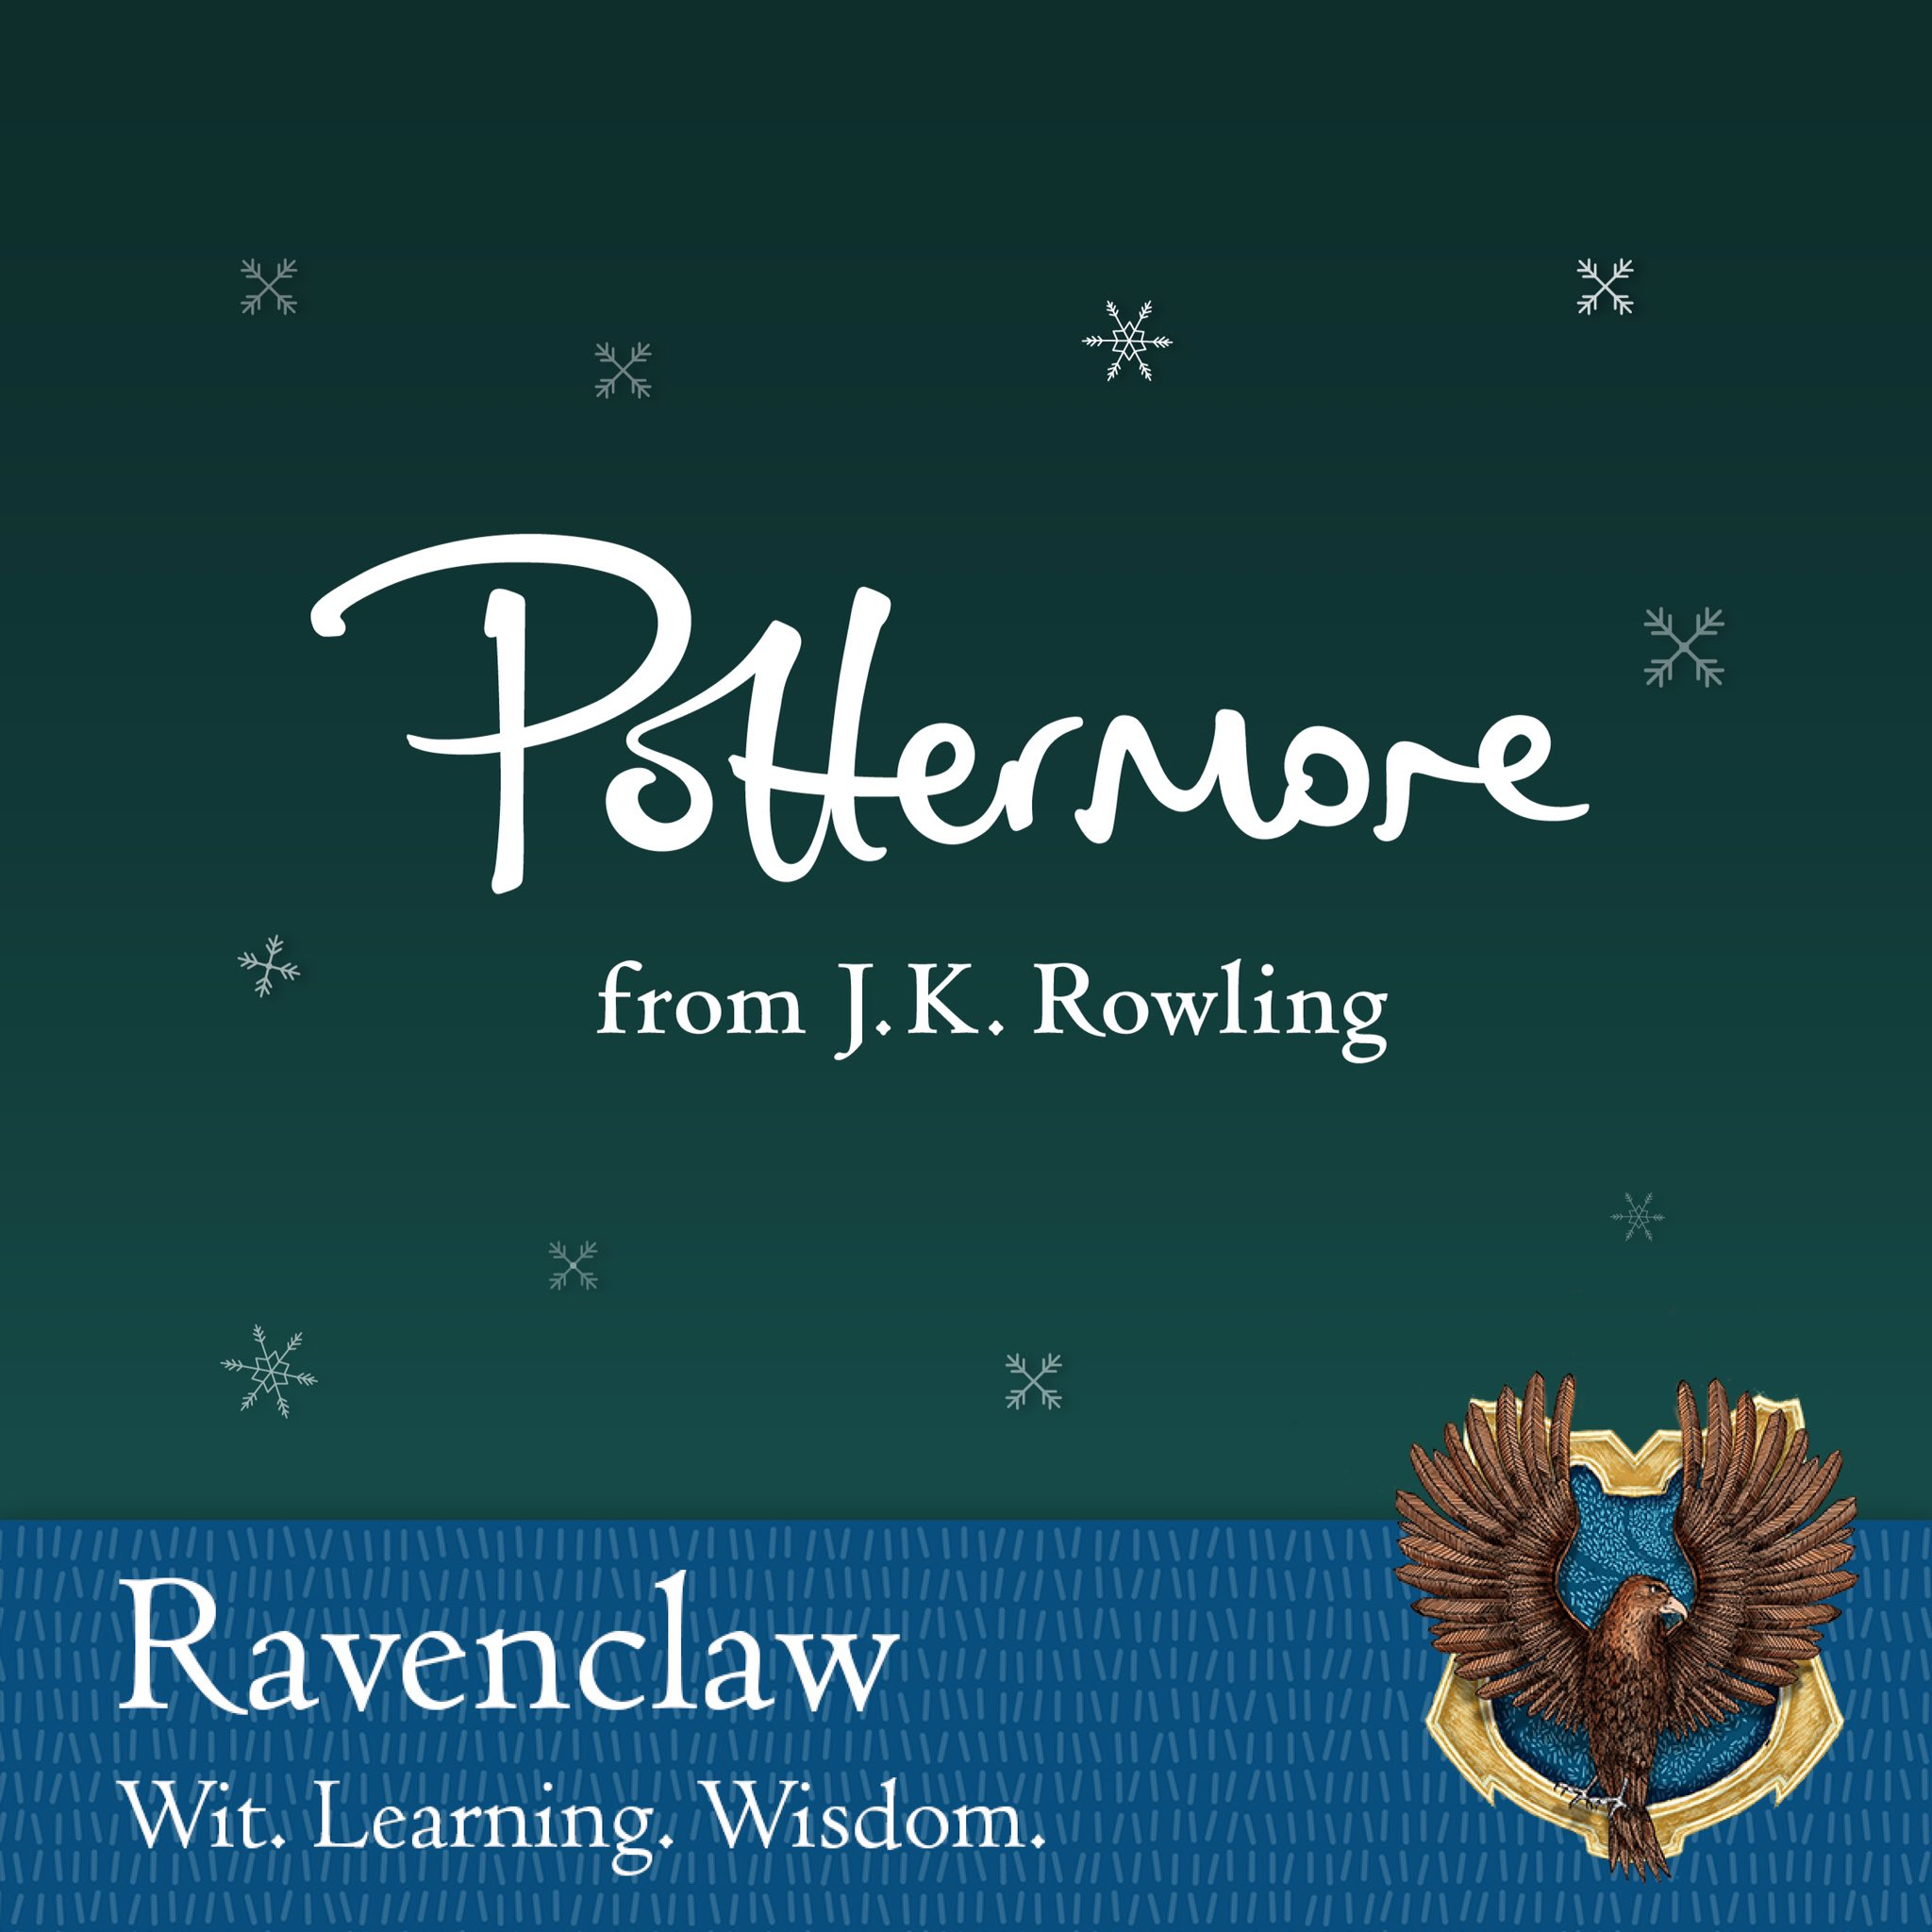 Pottermore On Twitter Quot Ravenclaws You D Be Wise To Use